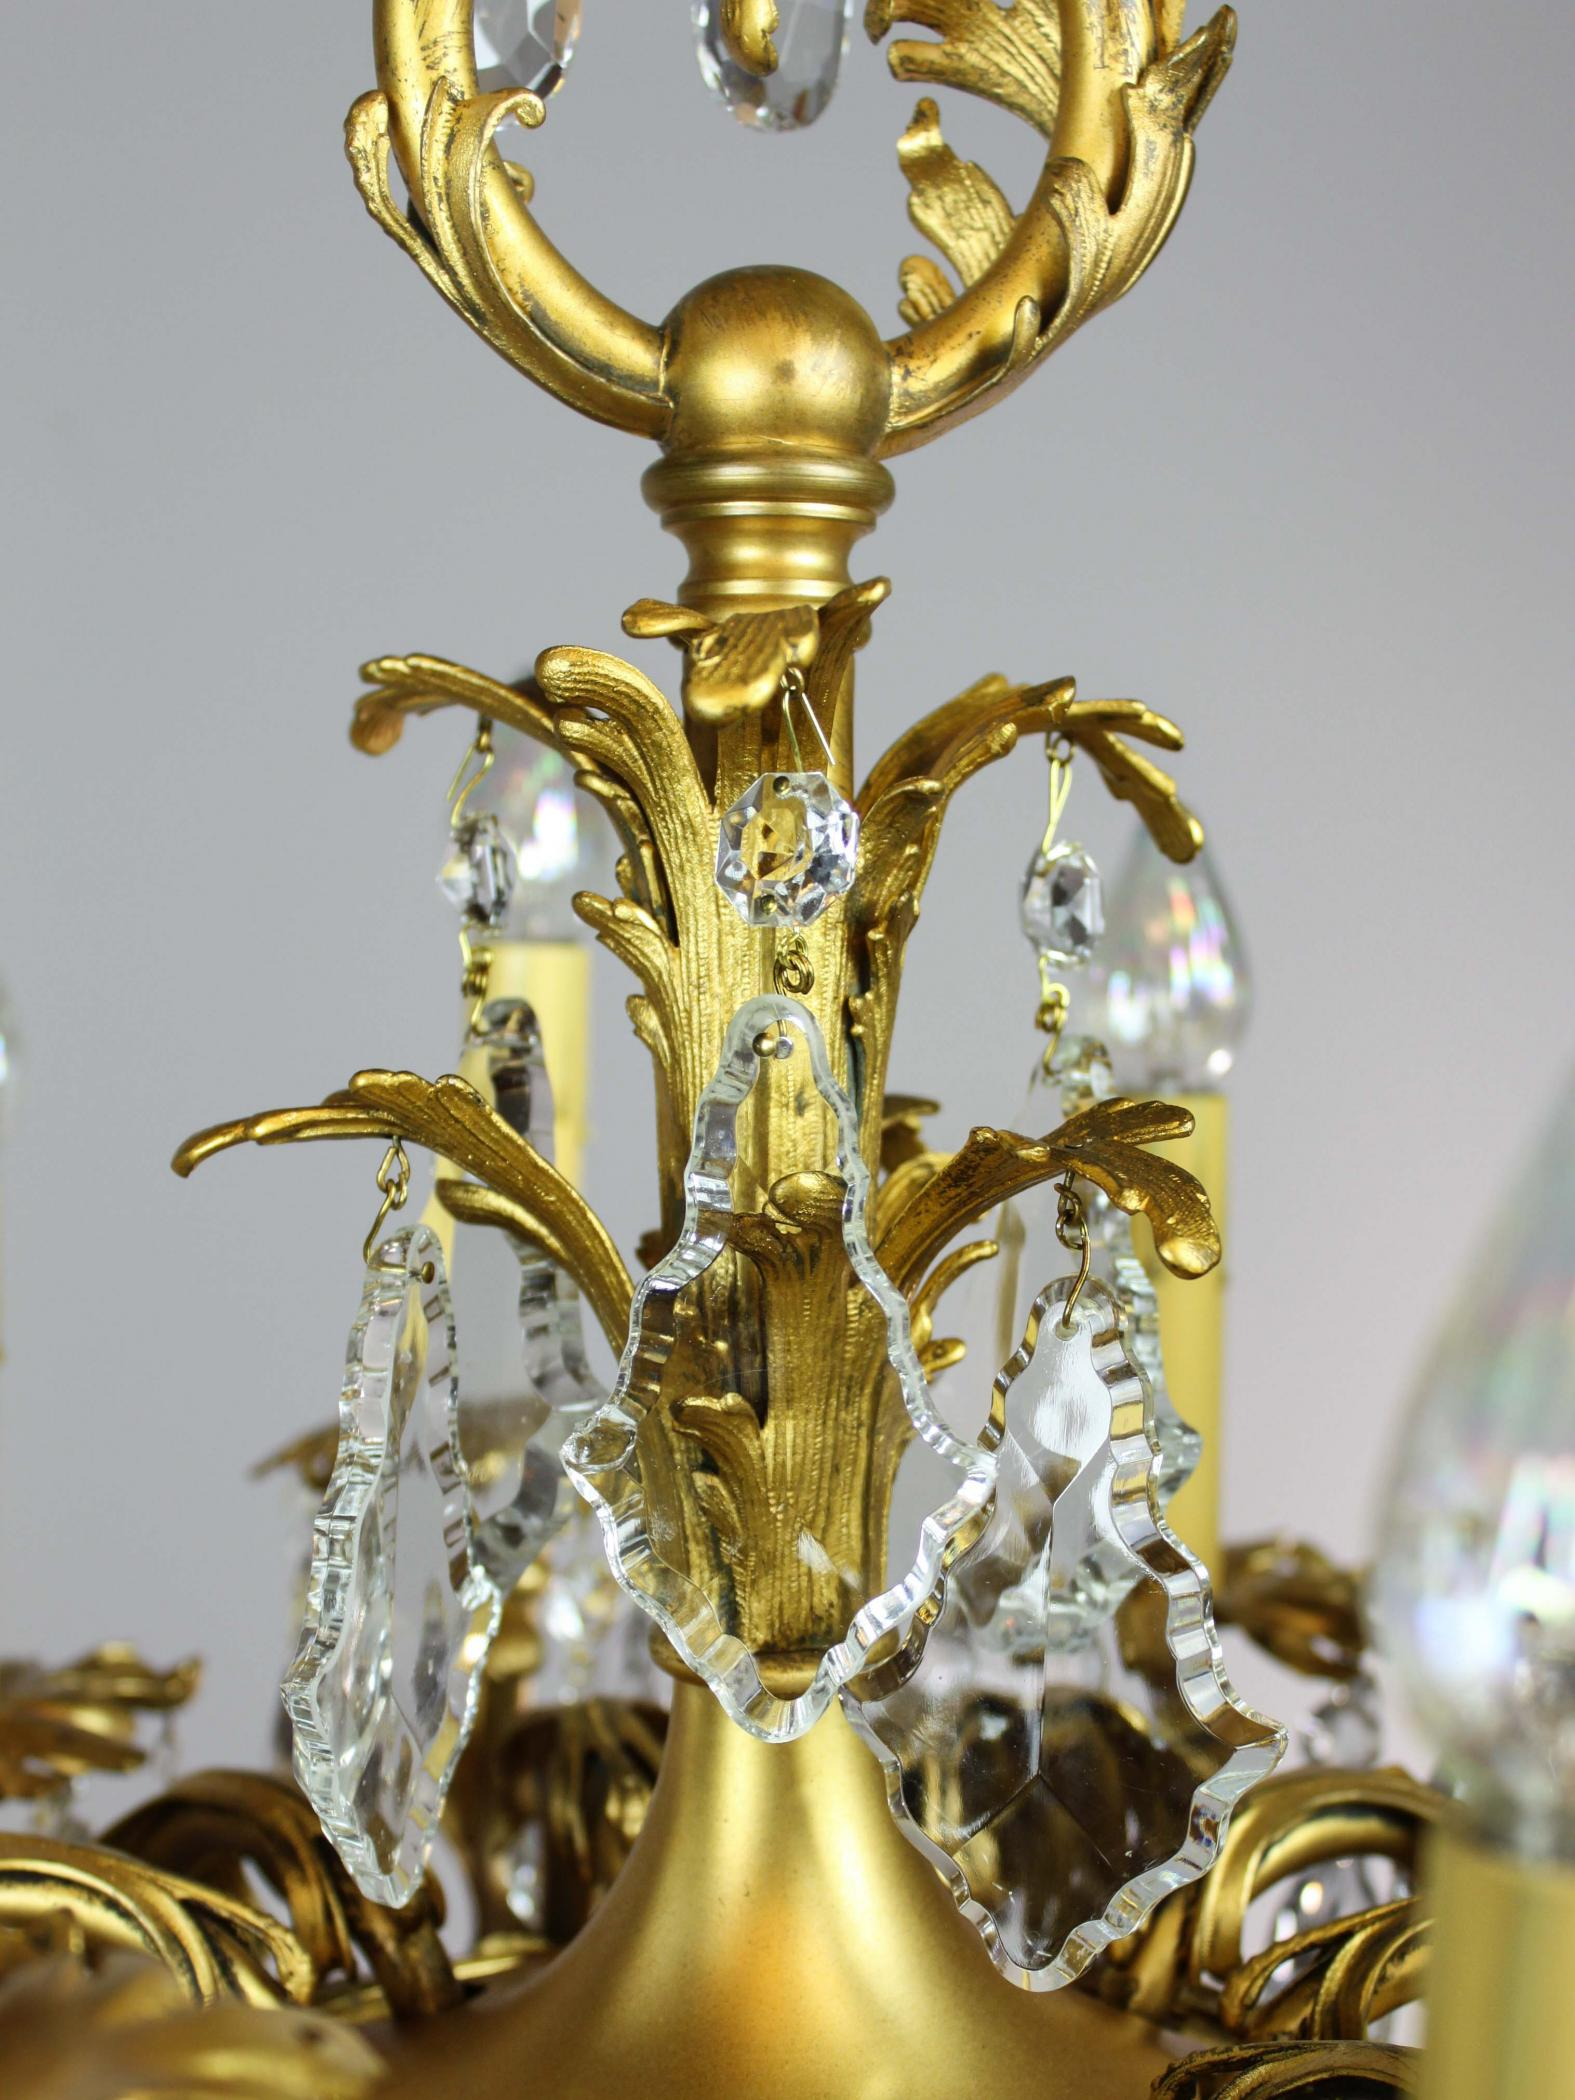 Gold plated Rococo 1910 Converted Gas Chandelier 9 light